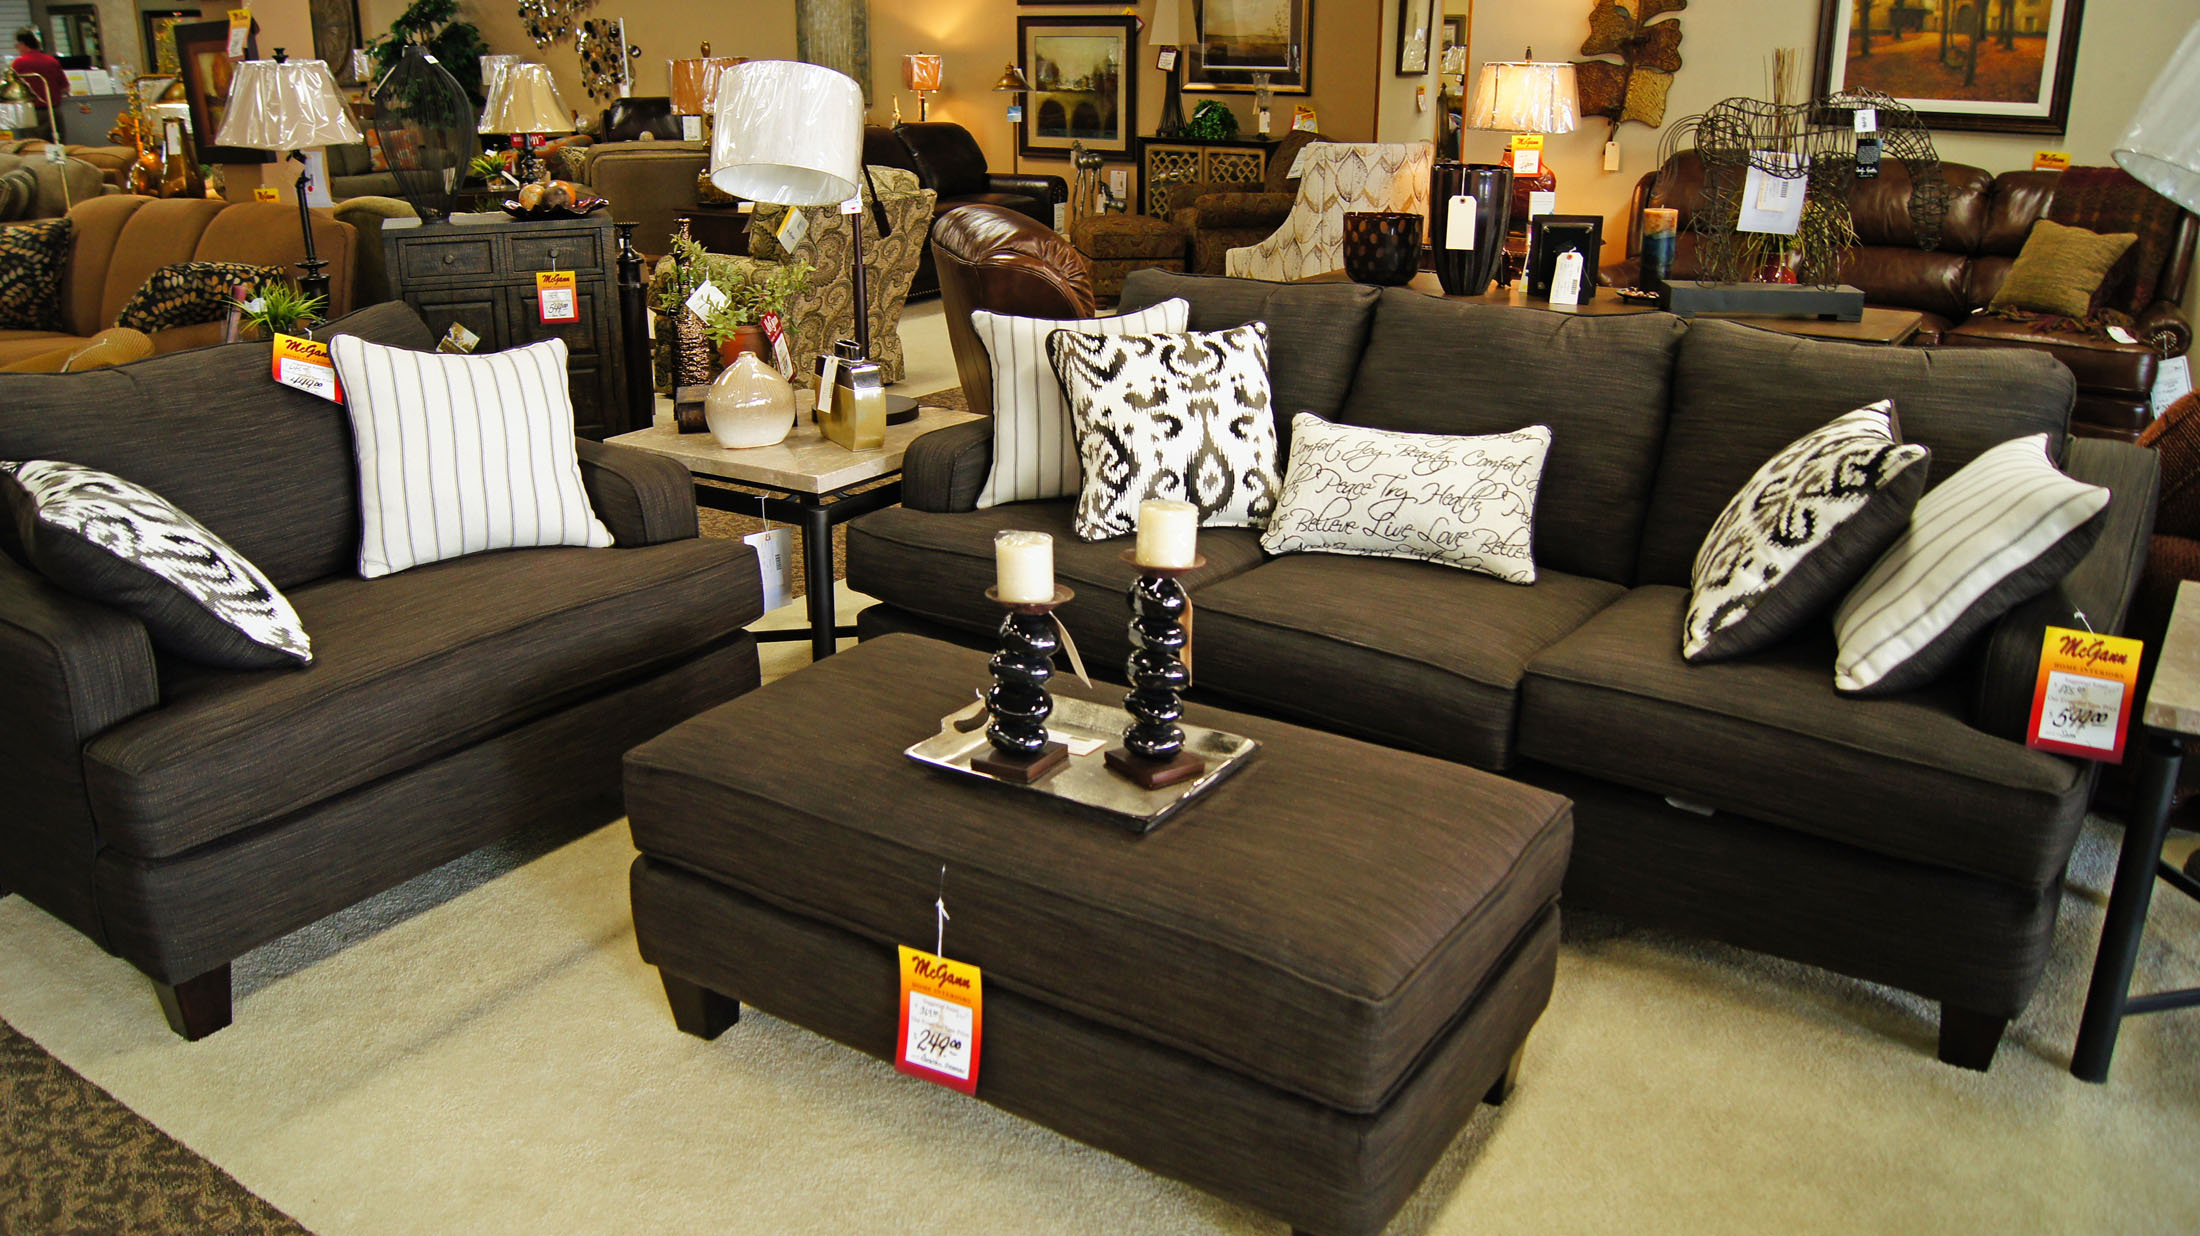 Mcgann furniture home store of baraboo wisconsin for Furniture depot